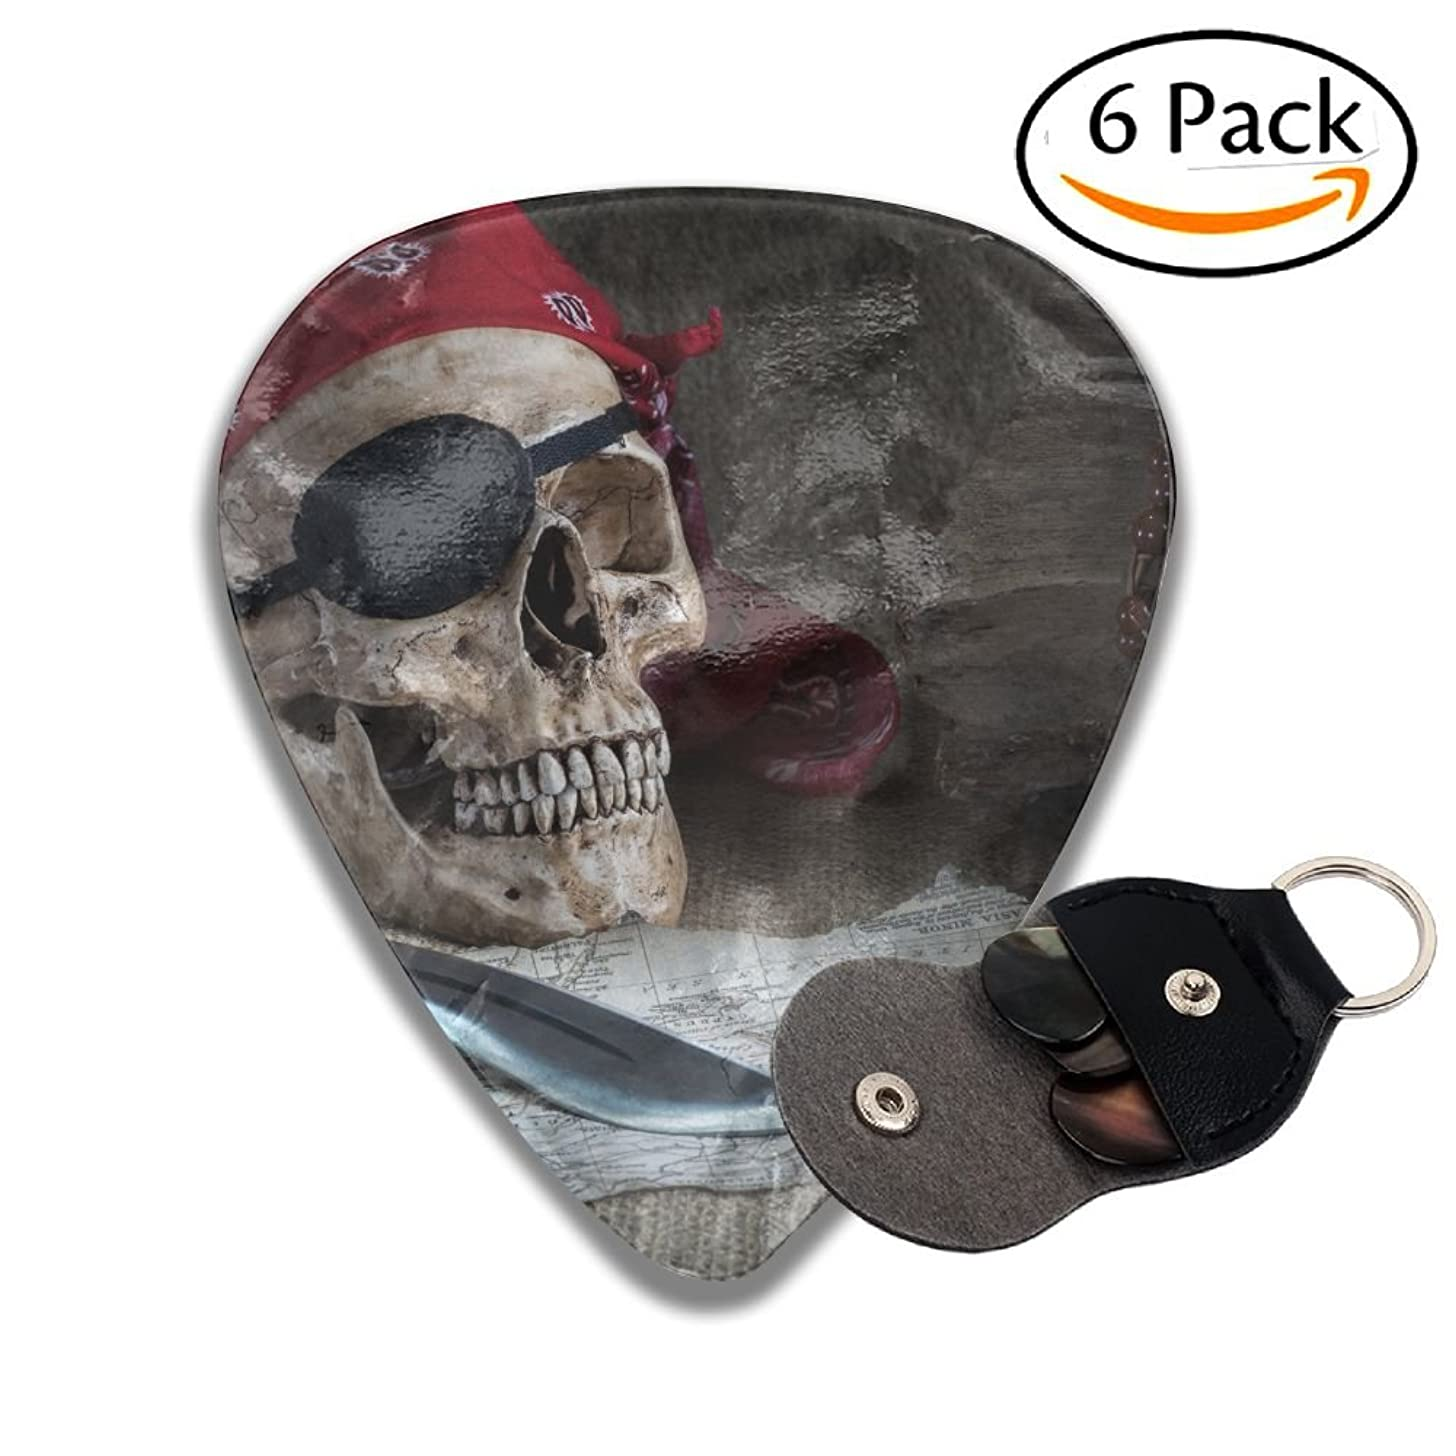 Wxf Still Life Pirate Skull With Knife Compass And Pocket Watch On Floor Stylish Celluloid Guitar Picks Plectrums For Guitar Bass .71mm 6 Pack